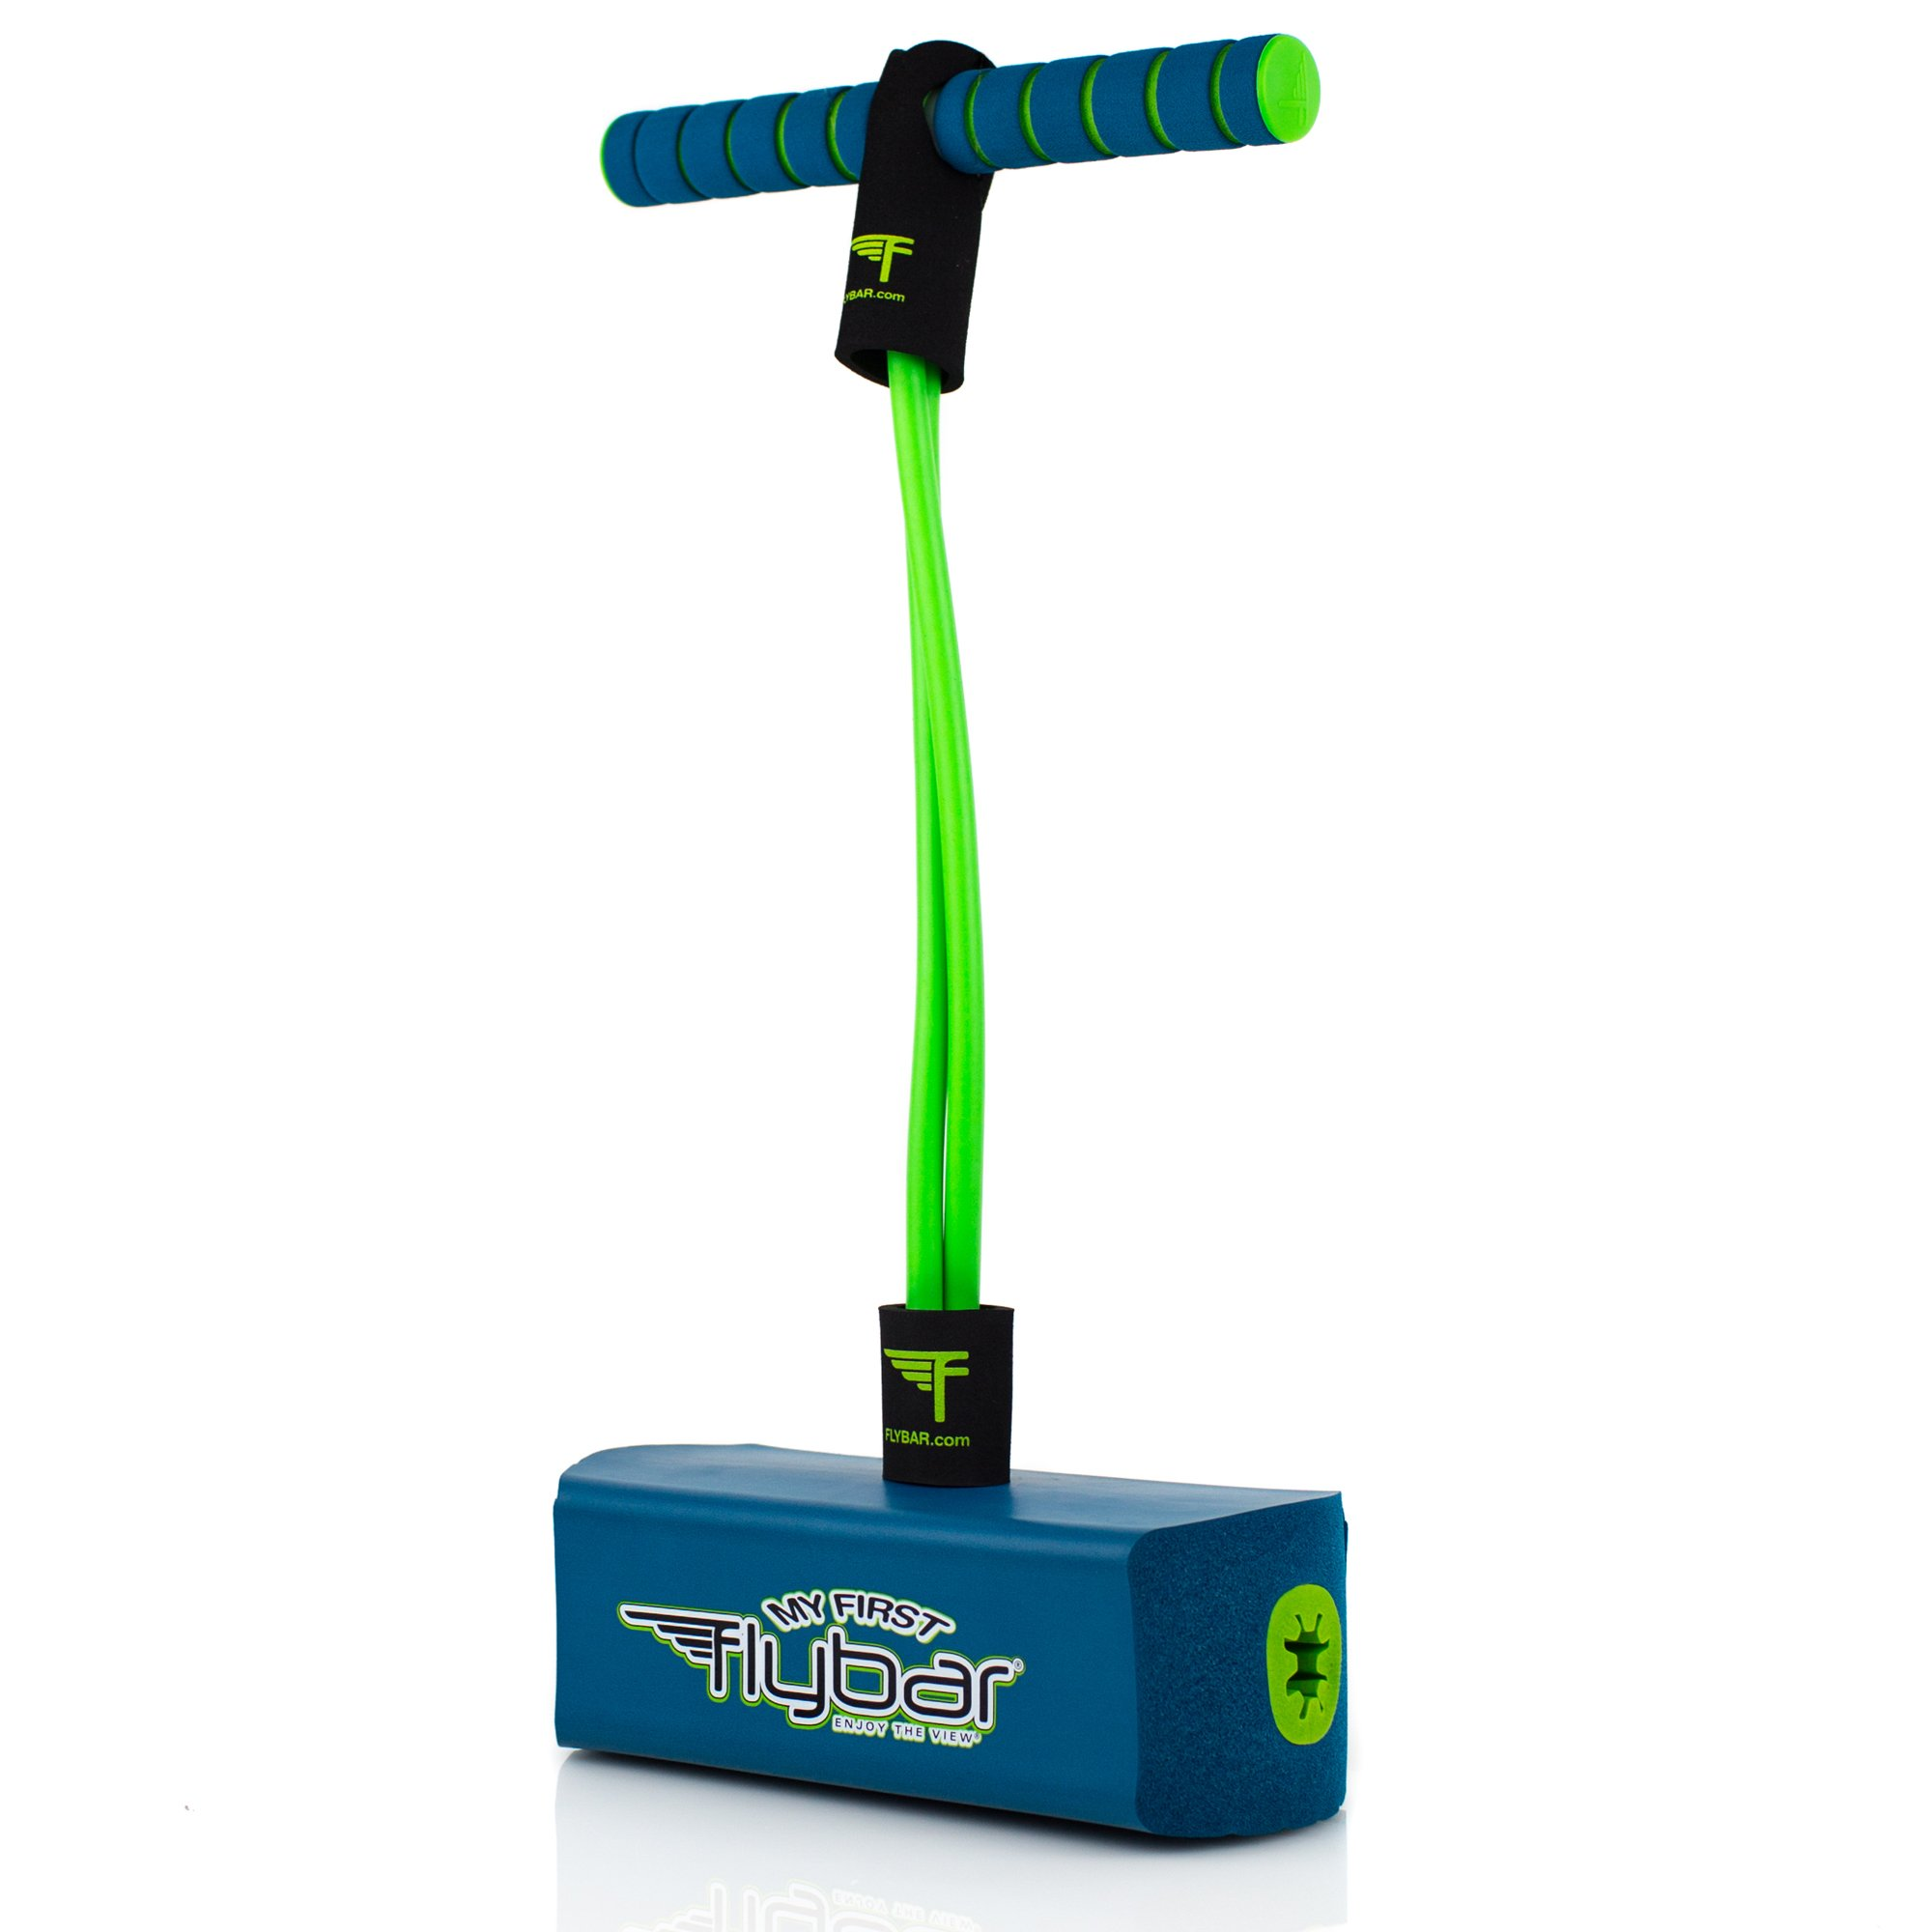 Flybar My First Foam Pogo Jumper for Kids Fun and Safe Pogo Stick Durable Foam and Bungee Jumper for Ages 3 and up Toddler Toys Supports up to 250lbs (Blue)